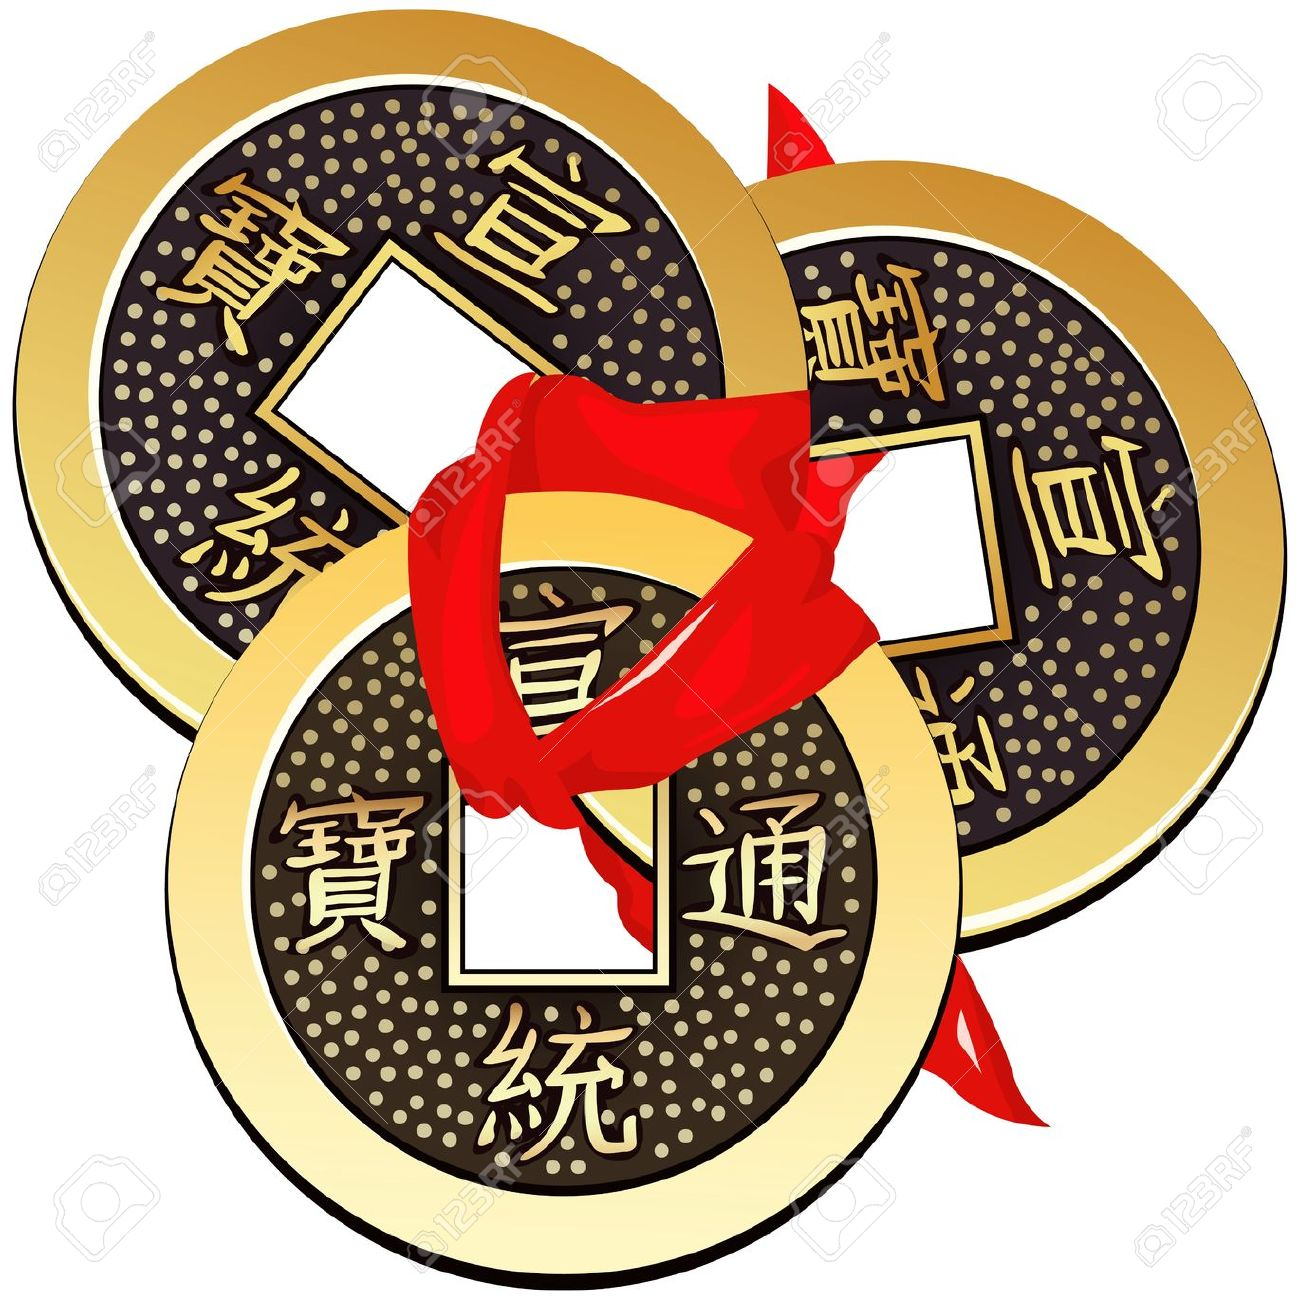 Ancient clipart chinese coin A Coins Circle feng A